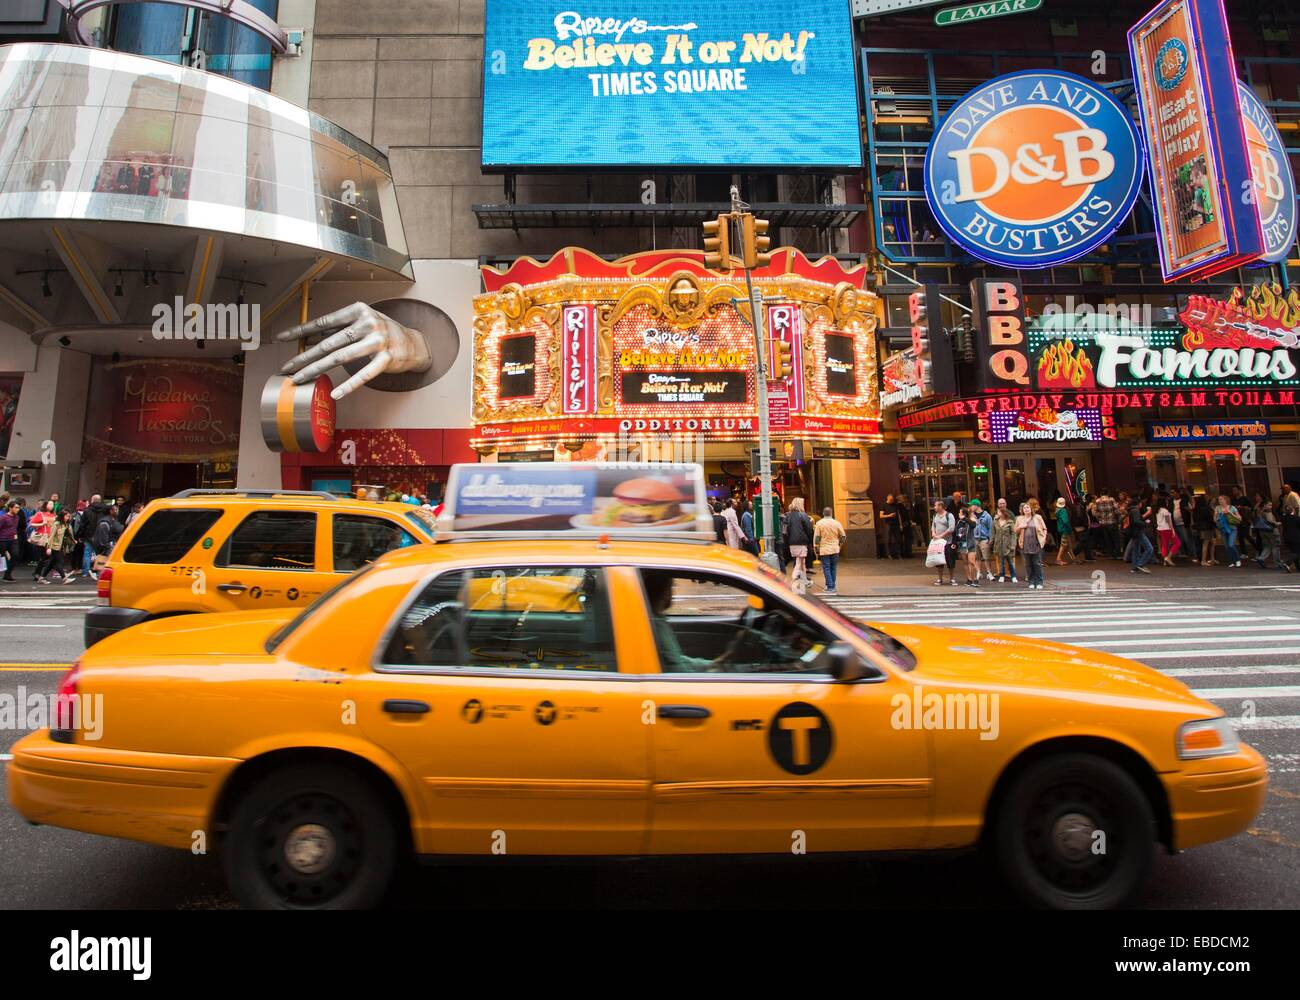 At left Madame Tussauds Wax Museum New York, 42nd street, 7th avenue, Theater District-Times Square, Midtown, Manhattan, - Stock Image